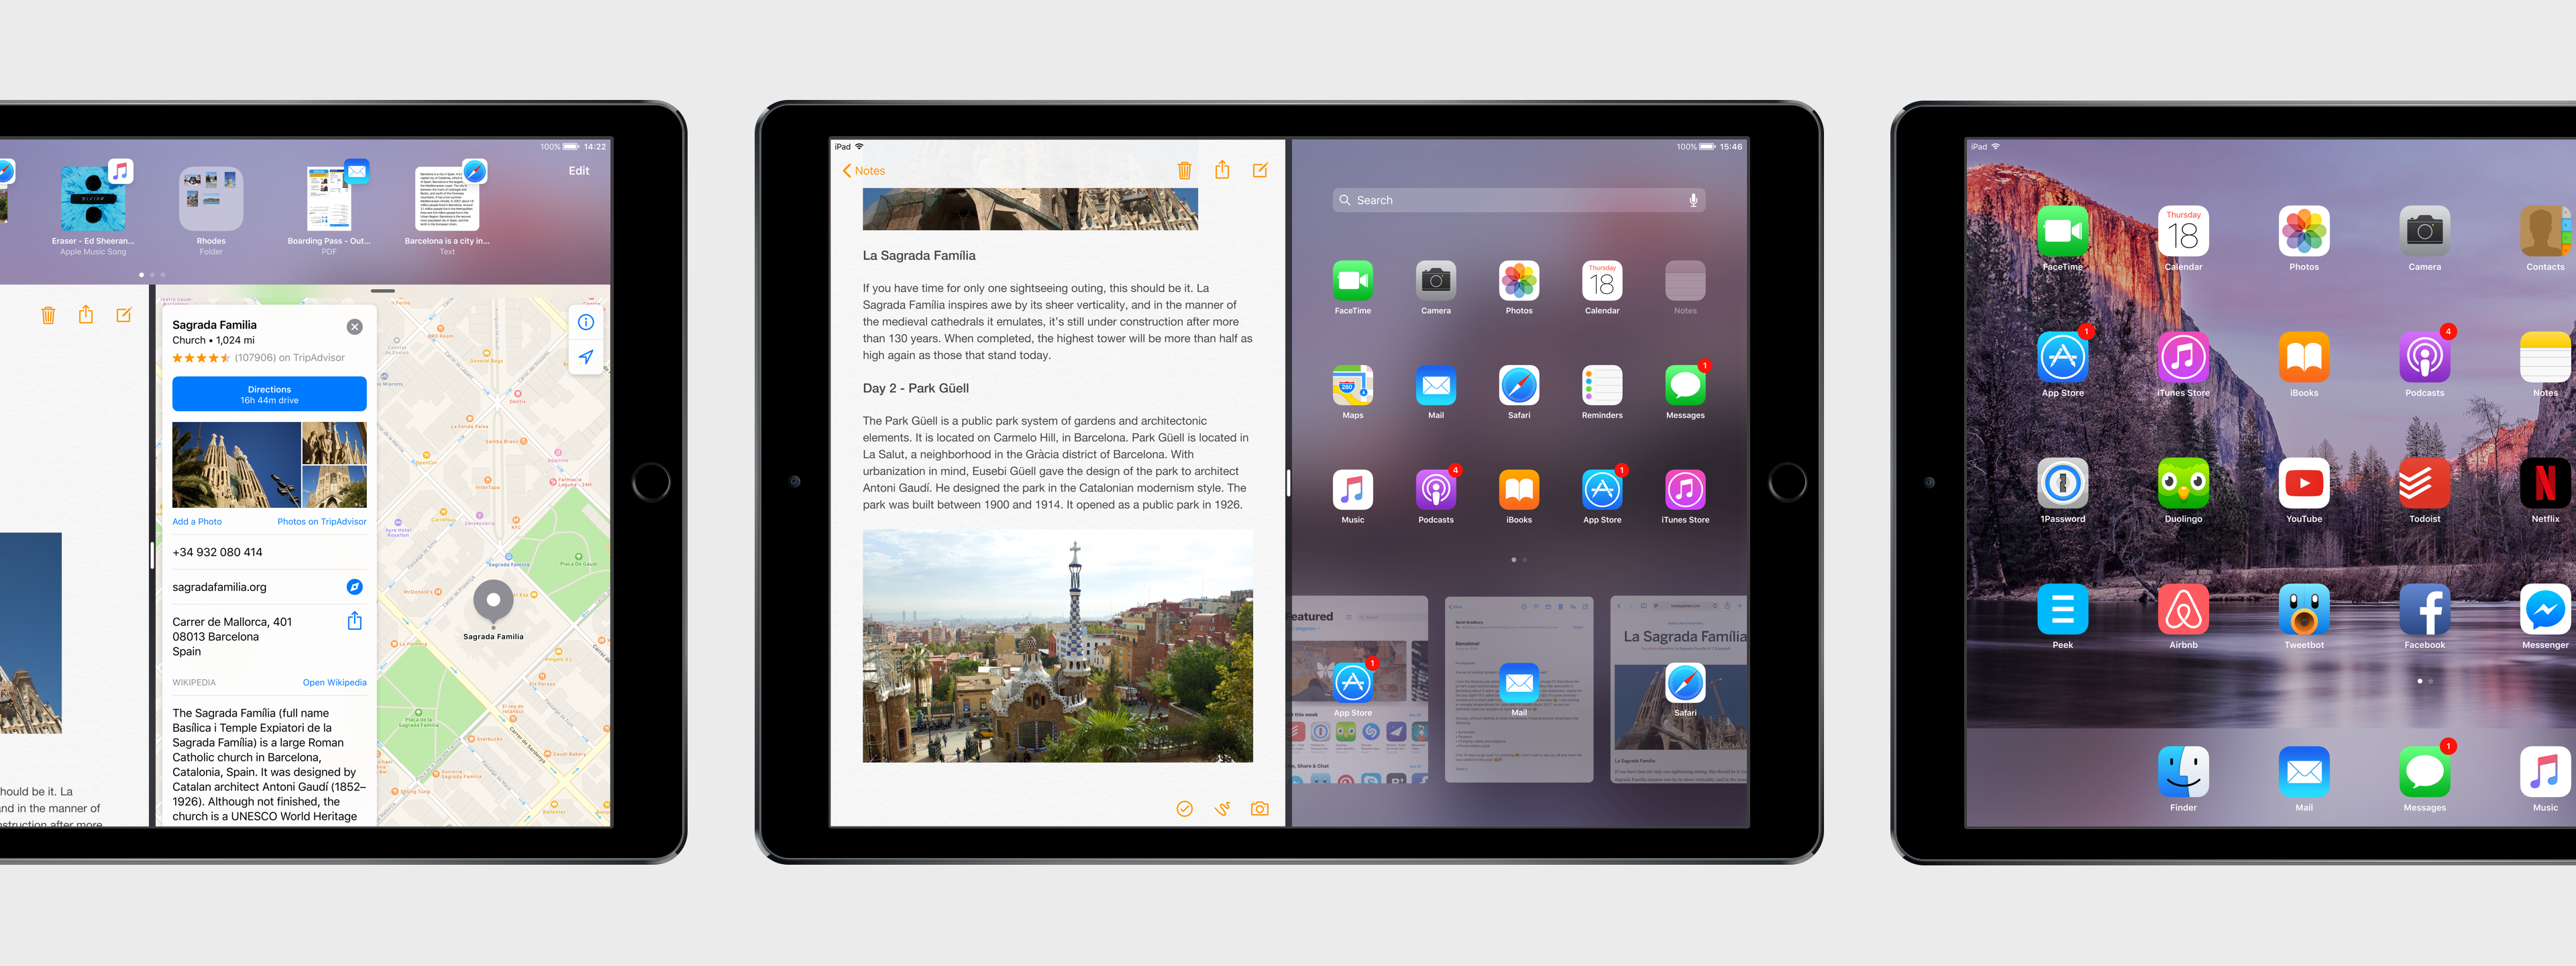 photo image New iOS 11 Concept Focuses on Improving the iPad Experience